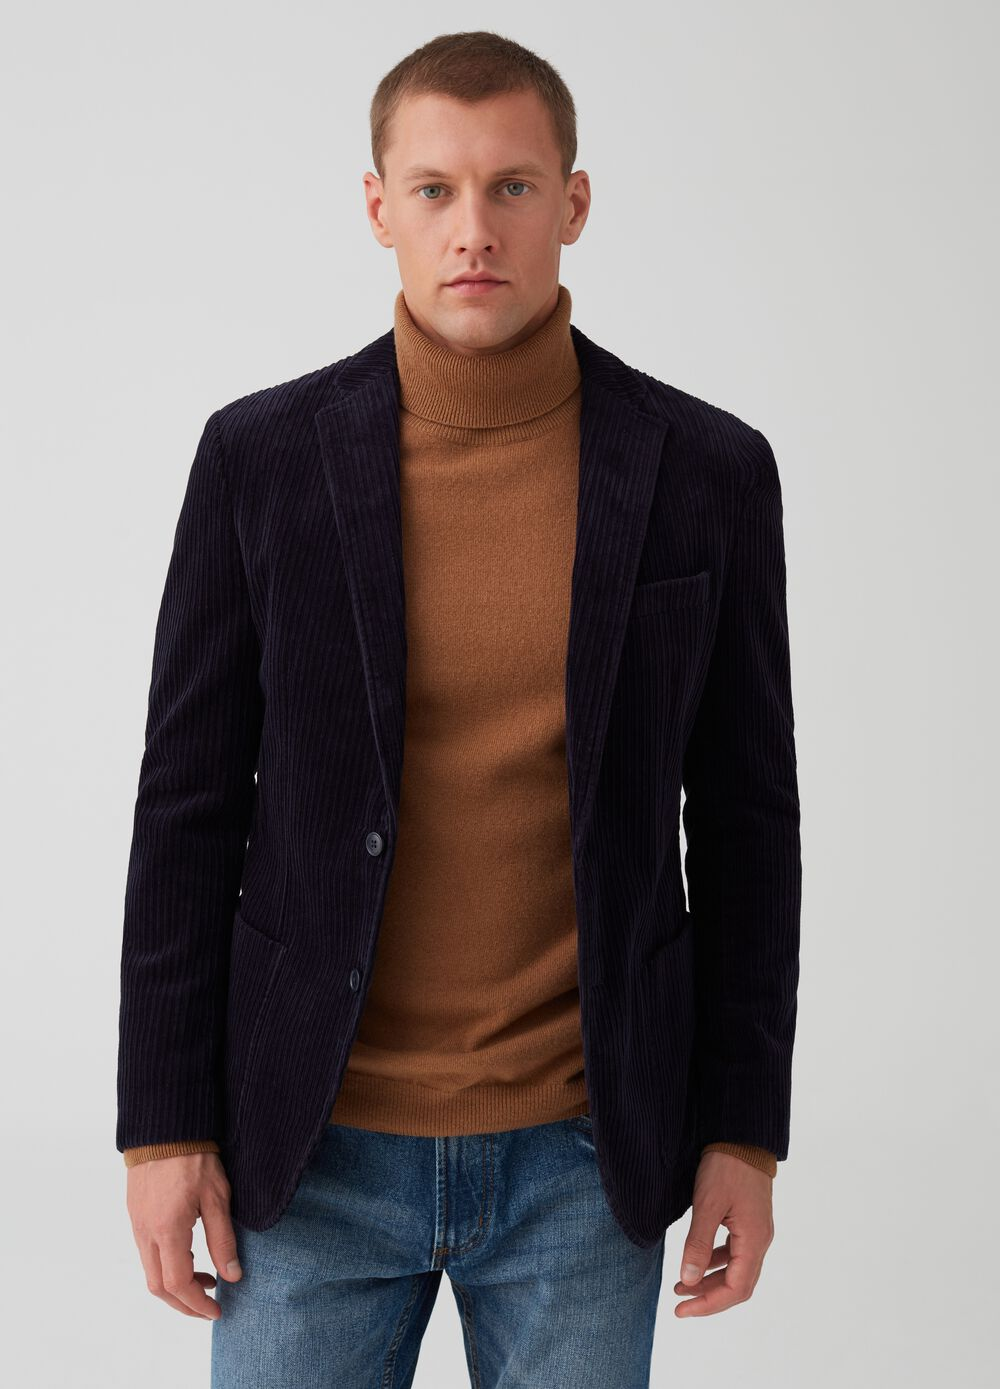 Rumford two-button jacket in velvet